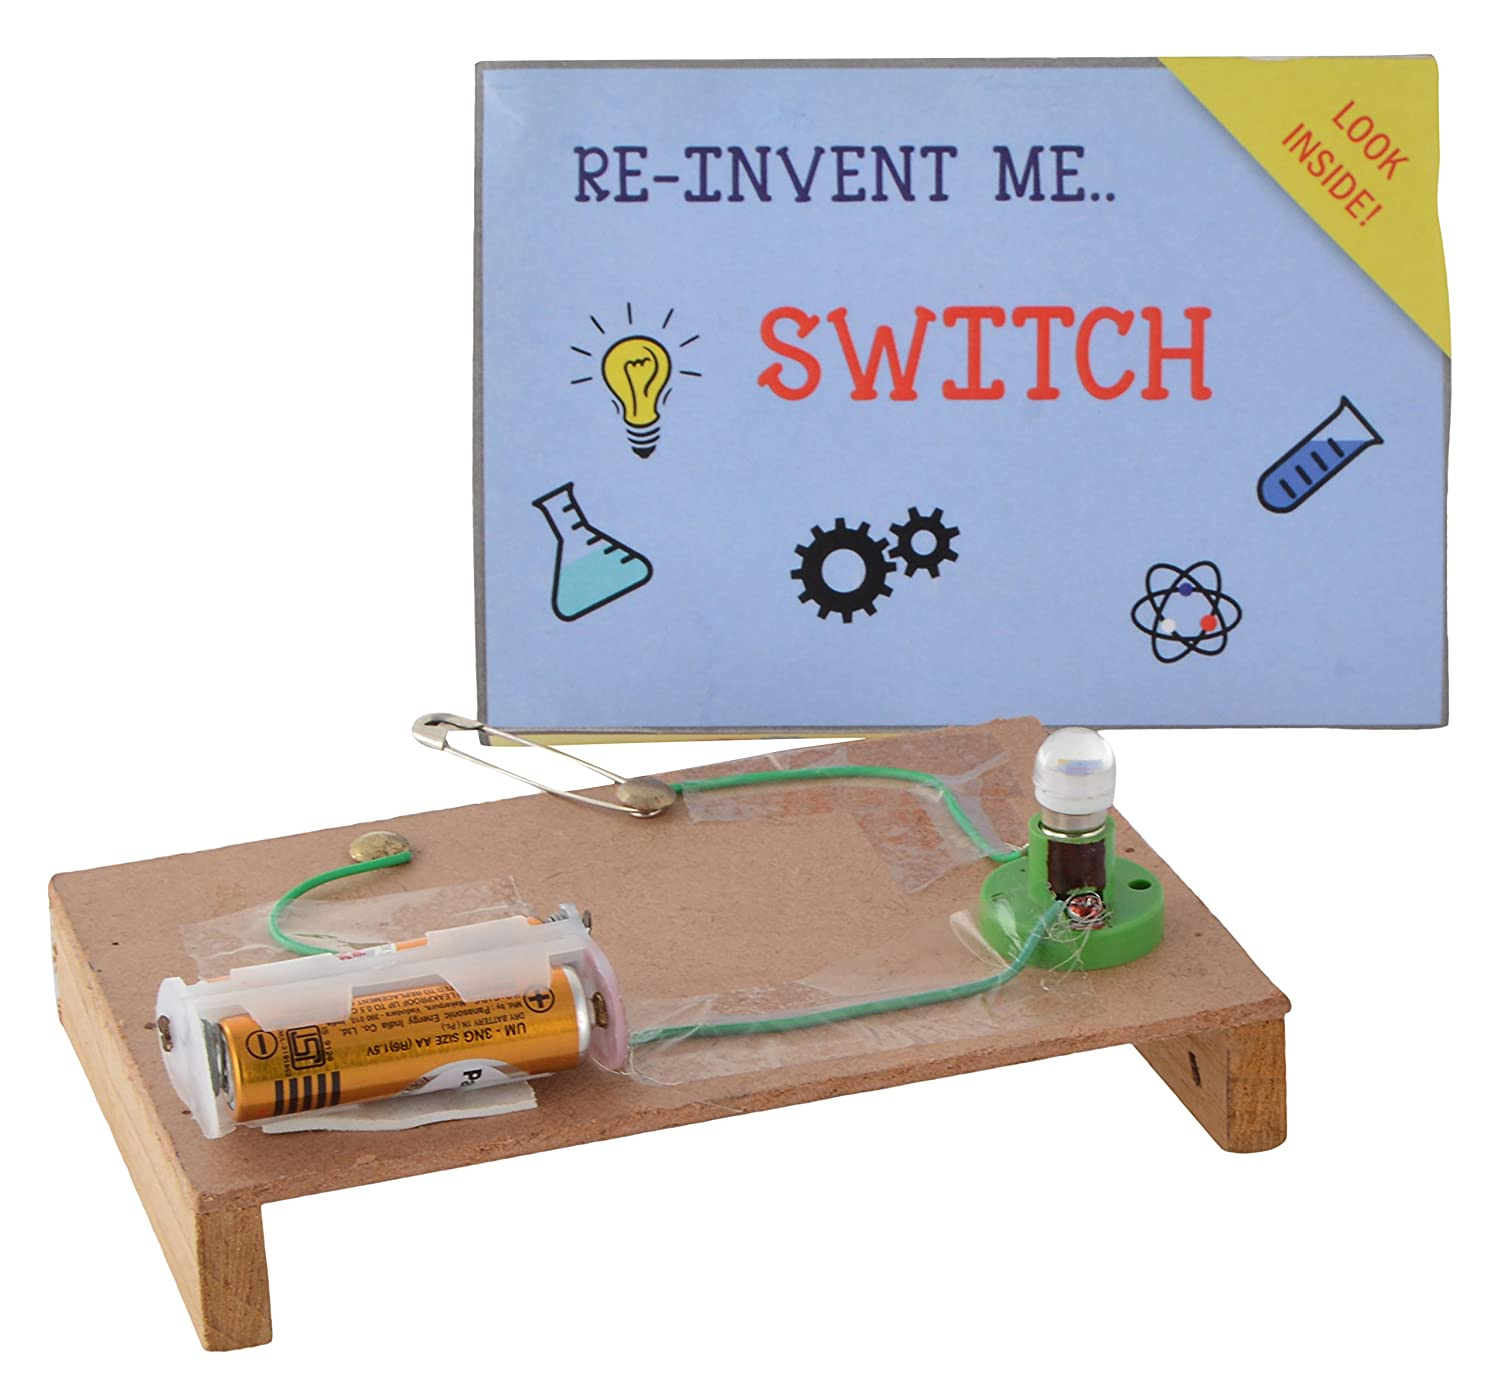 Buy Projectsforschool Simple Electric Switch School Science Project Electrical Circuit For Kids Working Model Diy Kit Game Multicolored Online At Low Prices In India